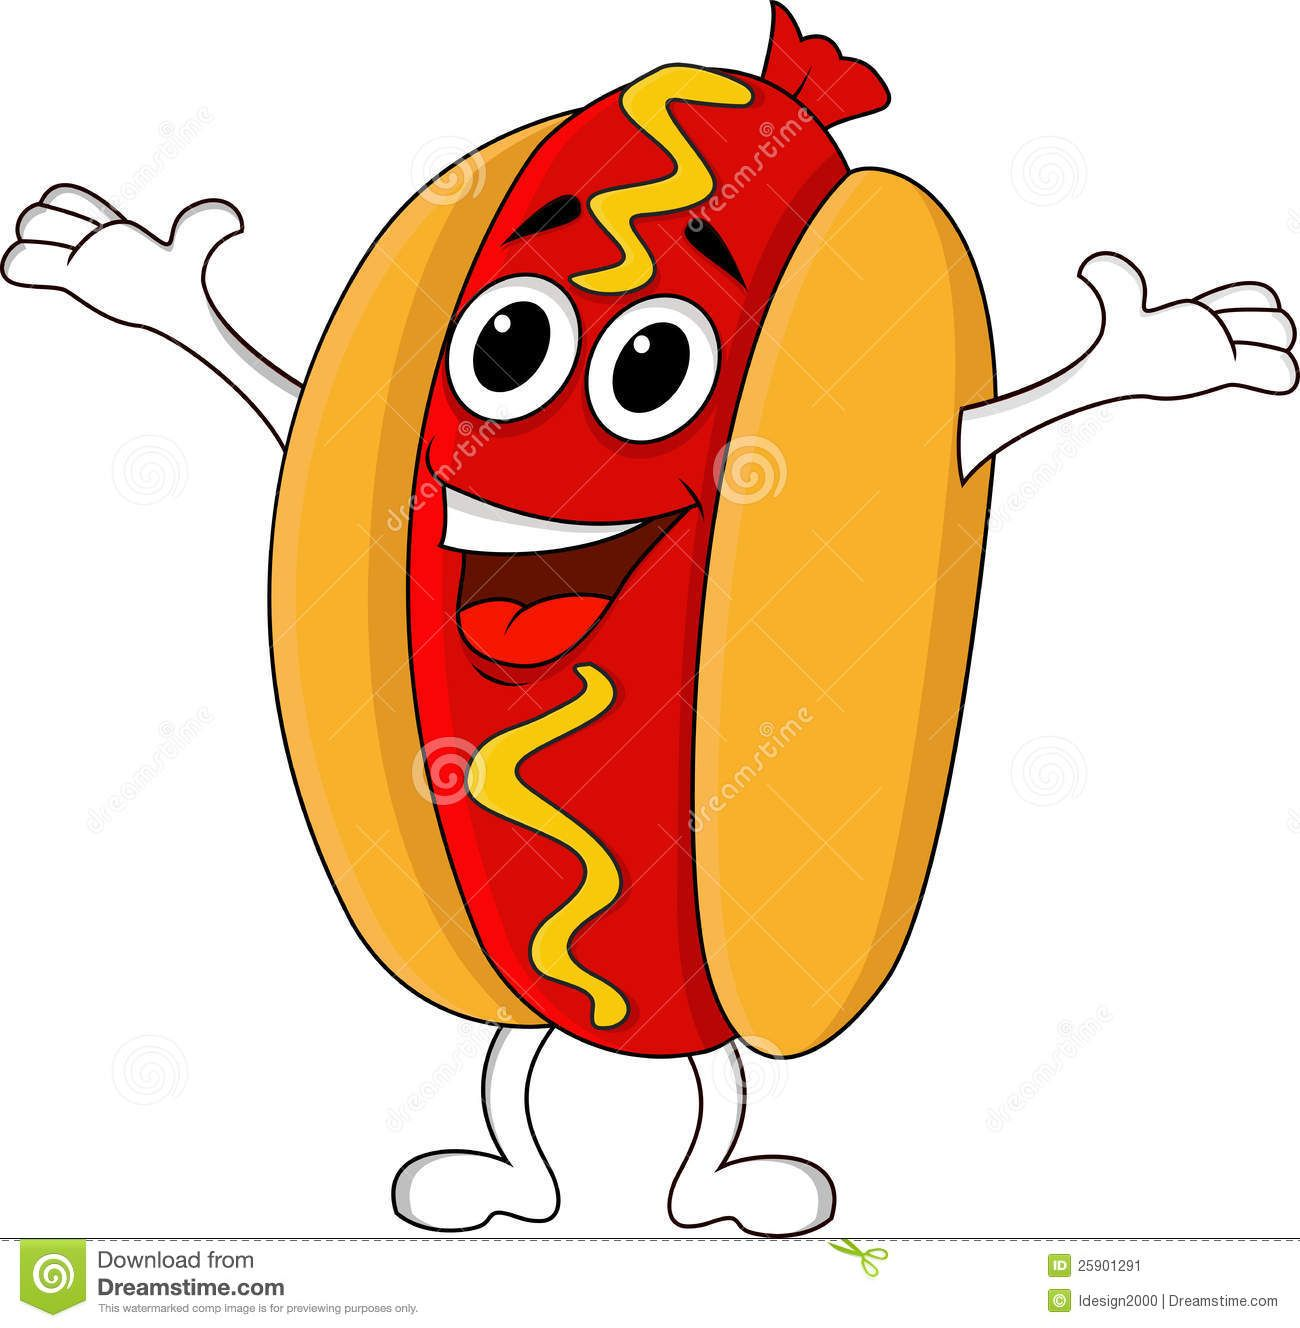 Hot dog wearing chef hat clipart png clip art freeuse library animated hot dog - Google Search   Hot Dog Cart in 2019   Dog clip ... clip art freeuse library